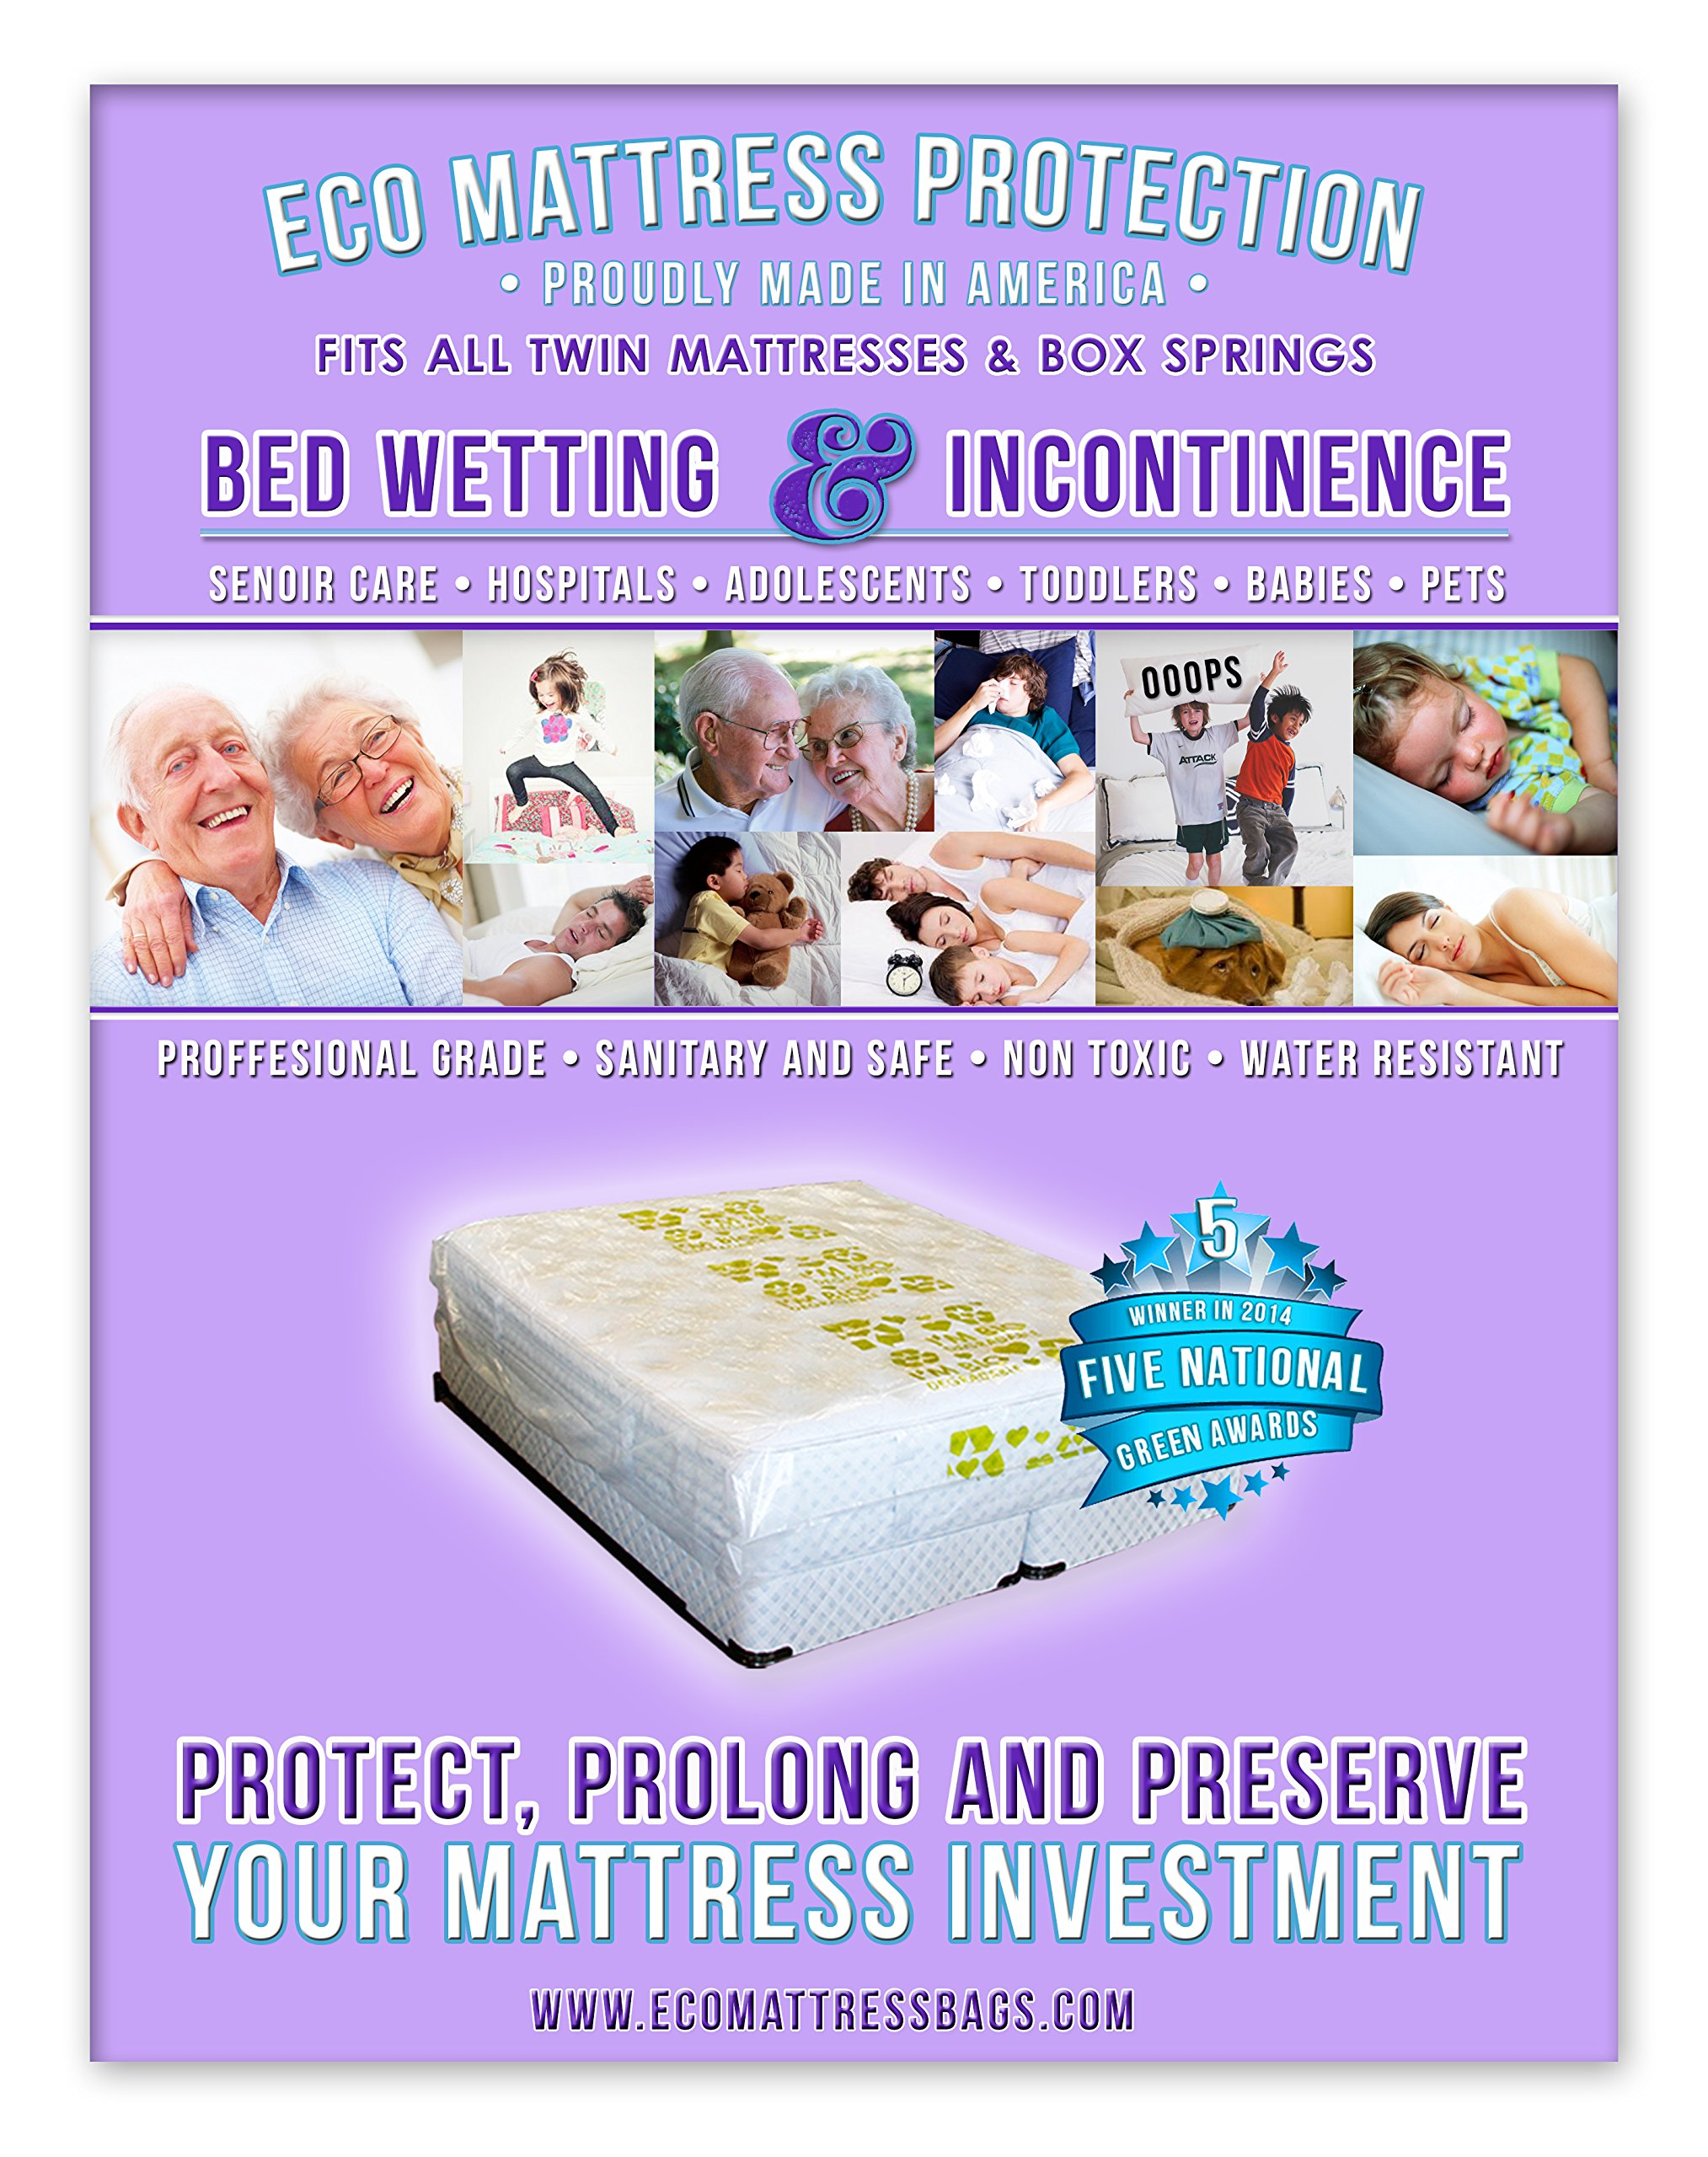 1 Twin Size Mattress Bag Designed for Bed Wetting and Incontinence. Fits All Pillow Tops and Box Springs. Heavy Duty, Professional Hospital/ Medical Grade. Winner of 5 National Green Awards in 2014. Protect, Prolong and Preserve Your Mattress with our Wor